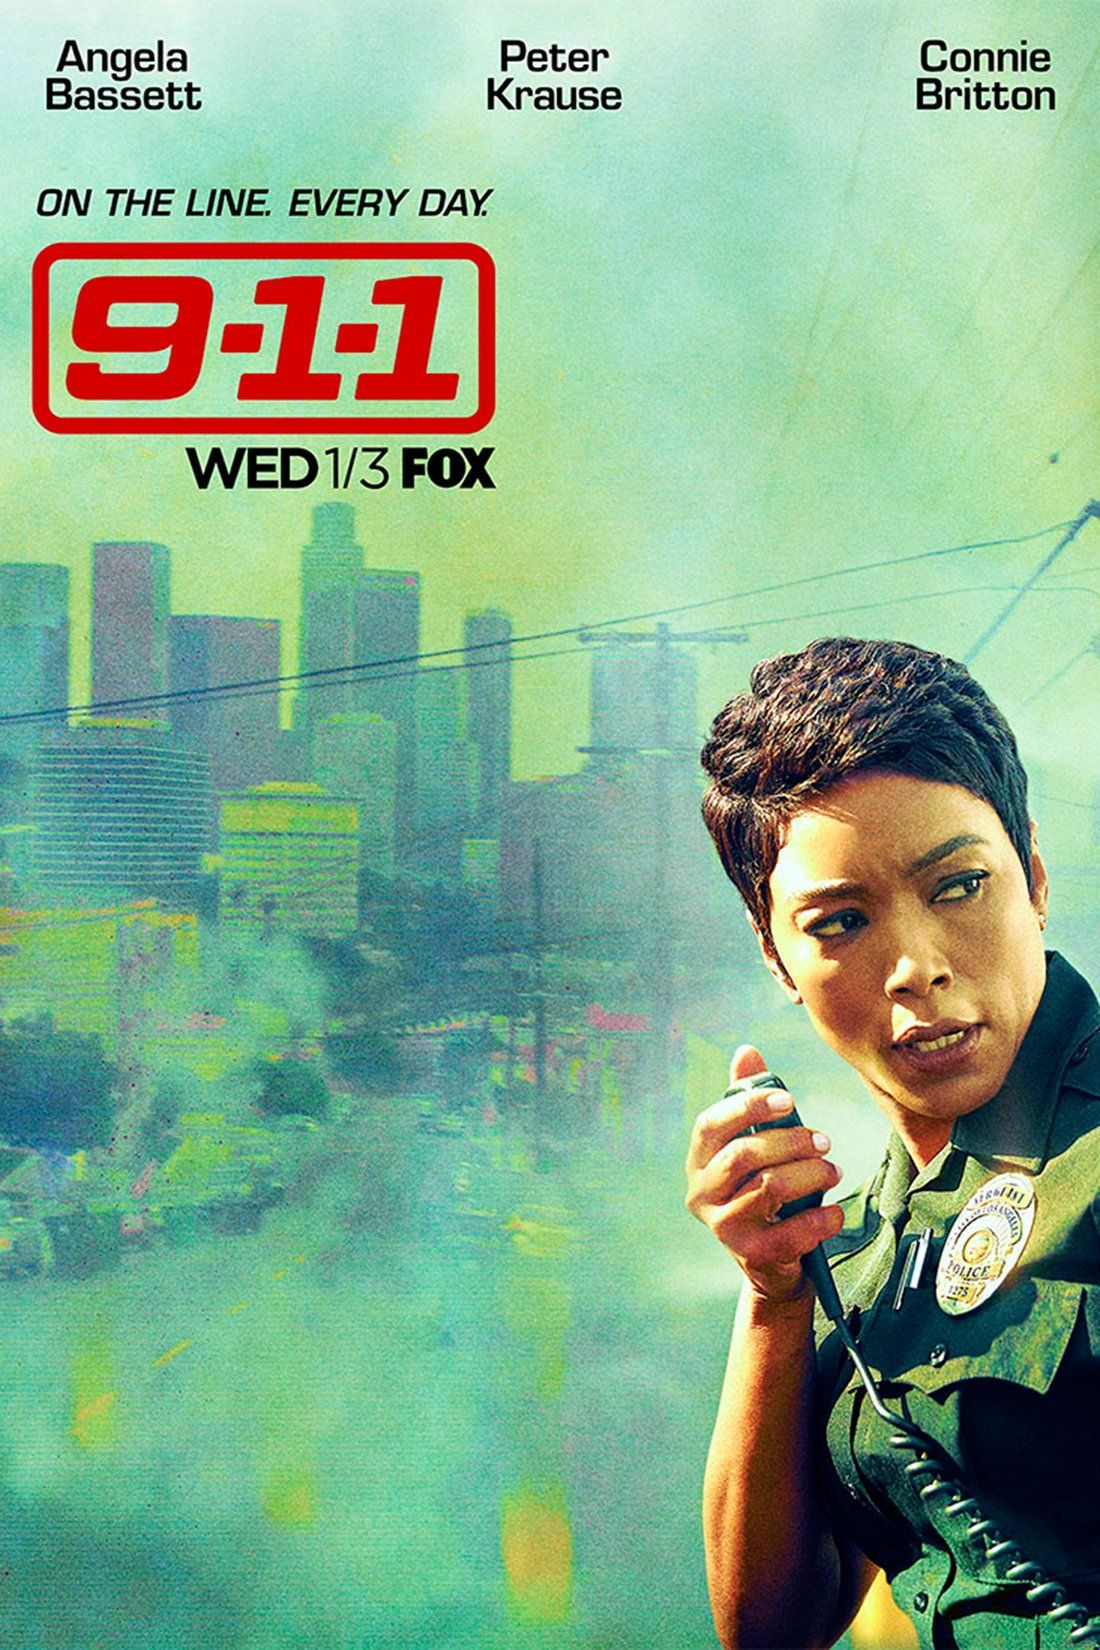 See The Terrifying New Poster For 9 1 1 The Drama From The